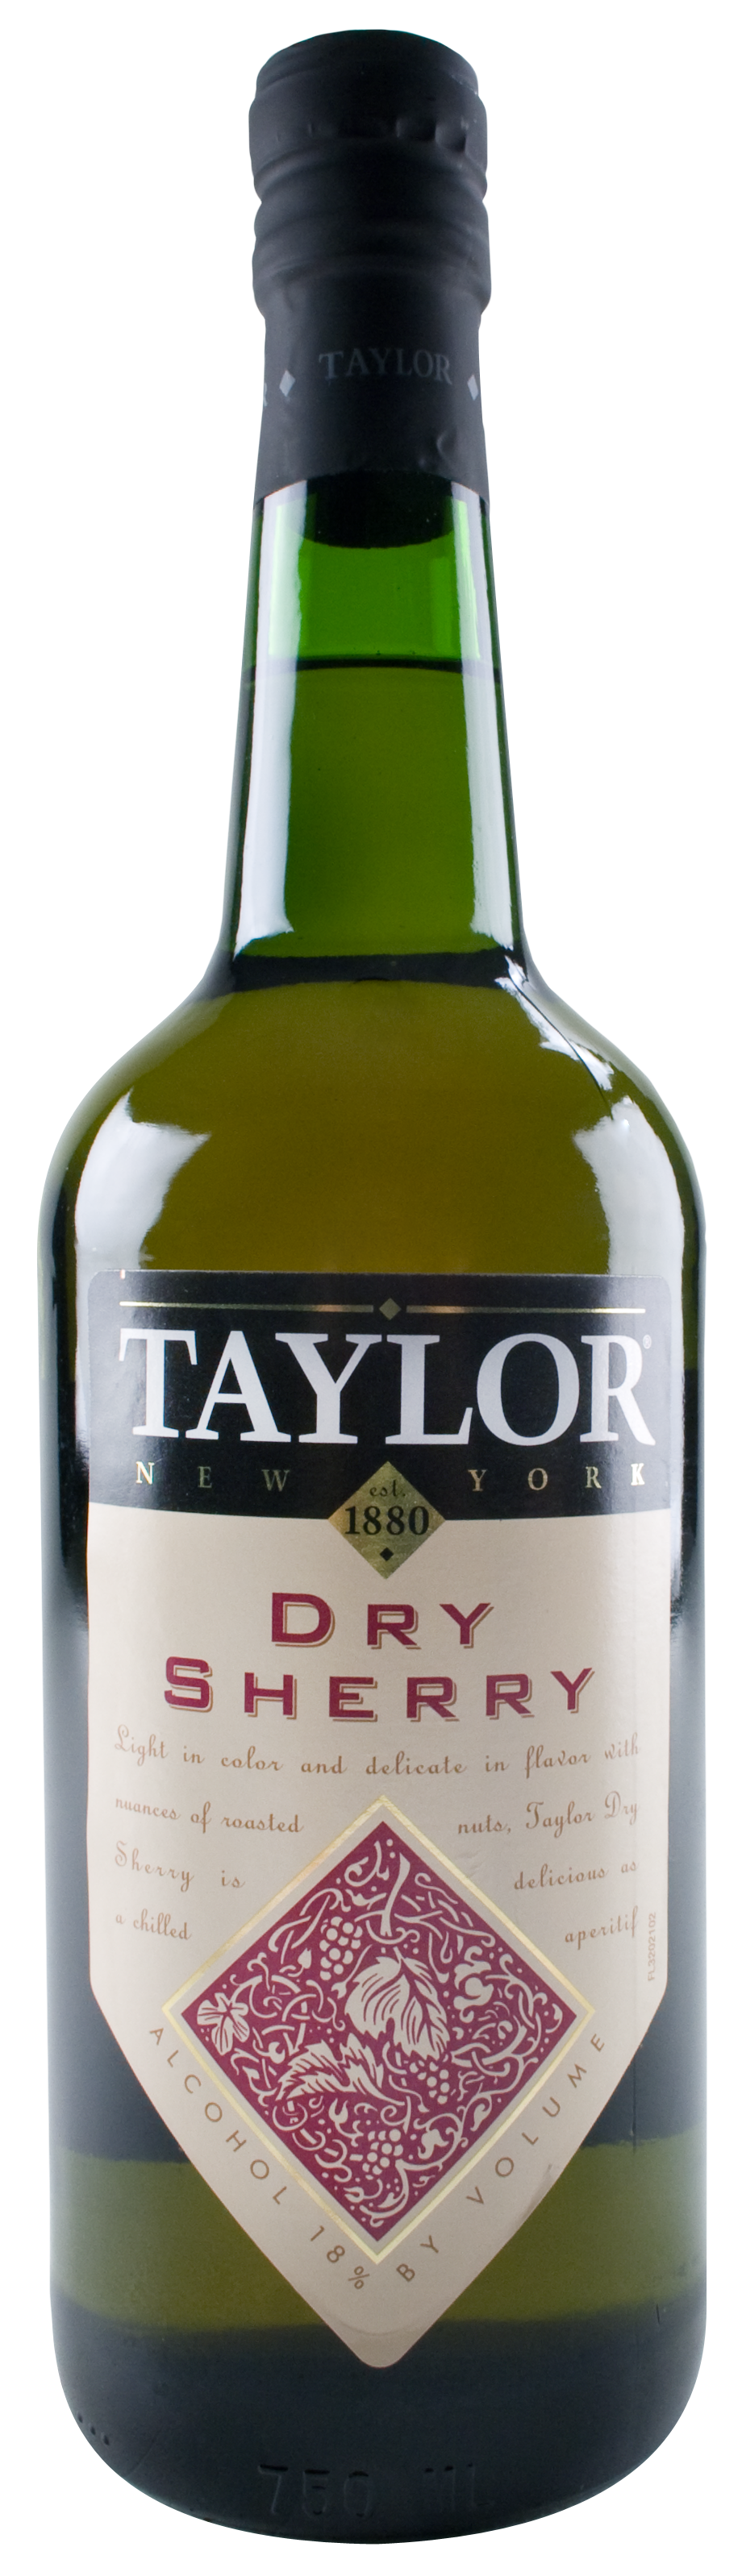 Taylor Dry Sherry Wine Library